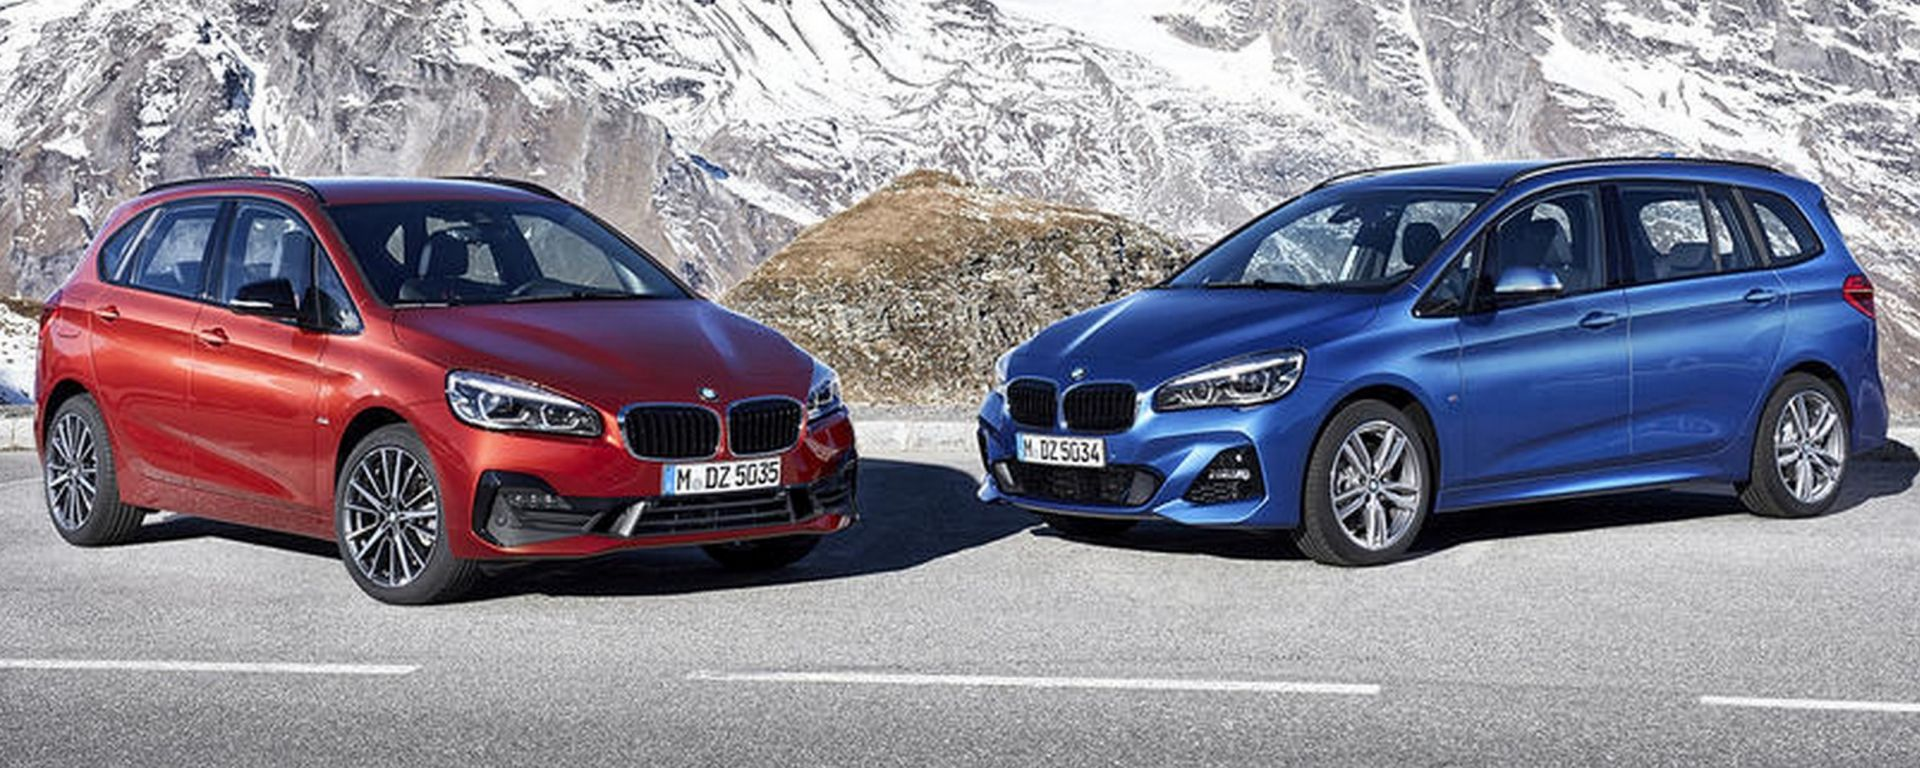 BMW Serie 2 Active Tourer e Grand Tourer: a Ginevra il facelift